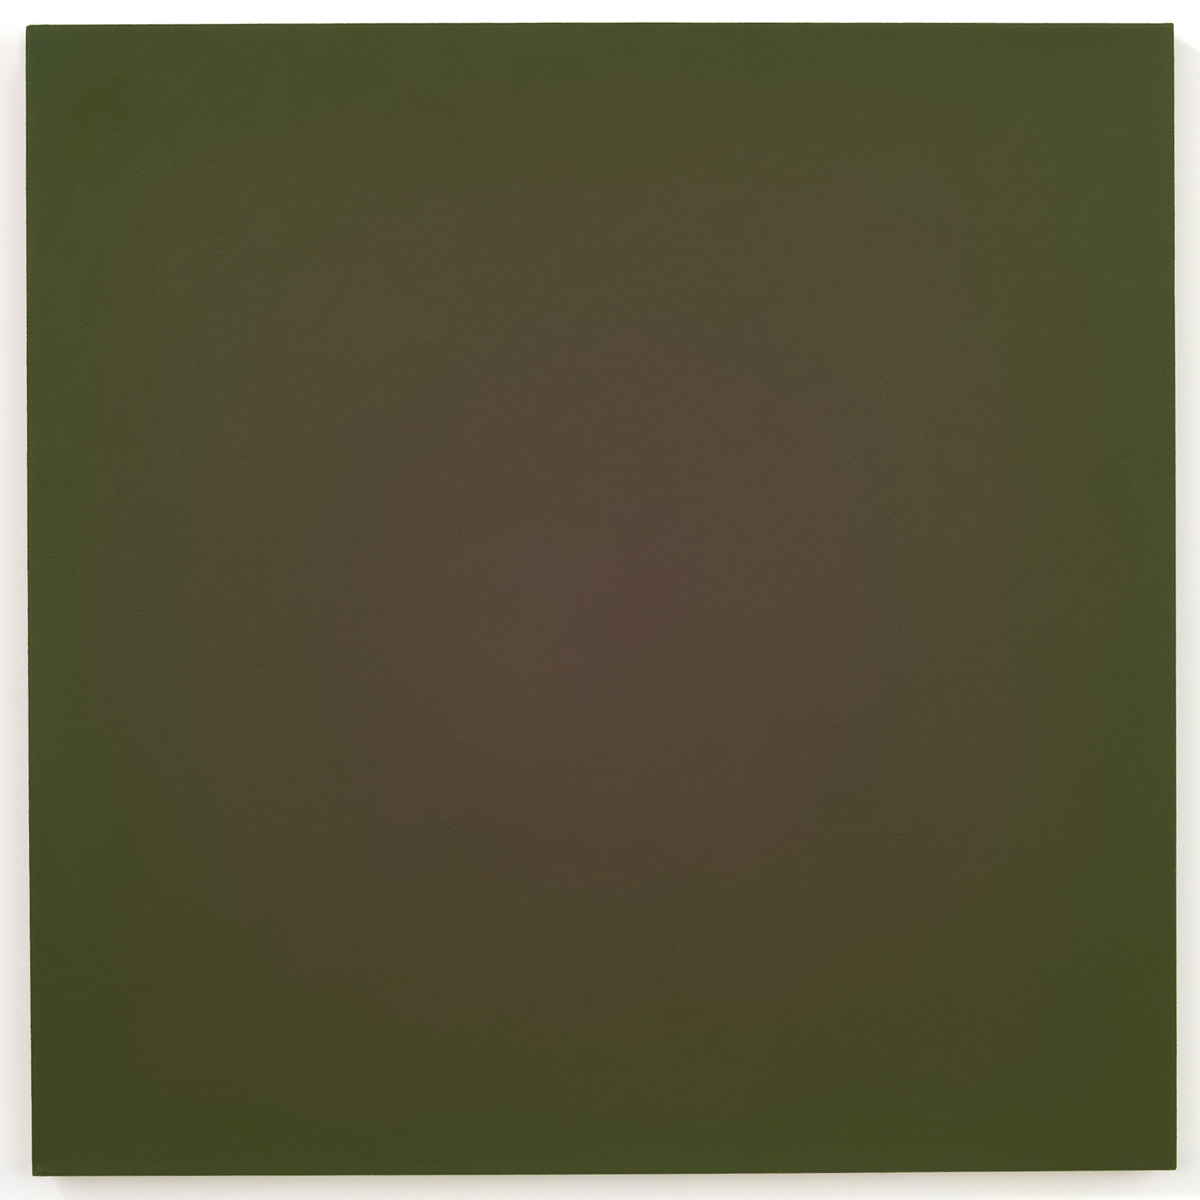 Desert Time (Red Green), Chance Rays Series, 1995, oil on canvas, 28 x 28 in. (71 x 71 cm.)